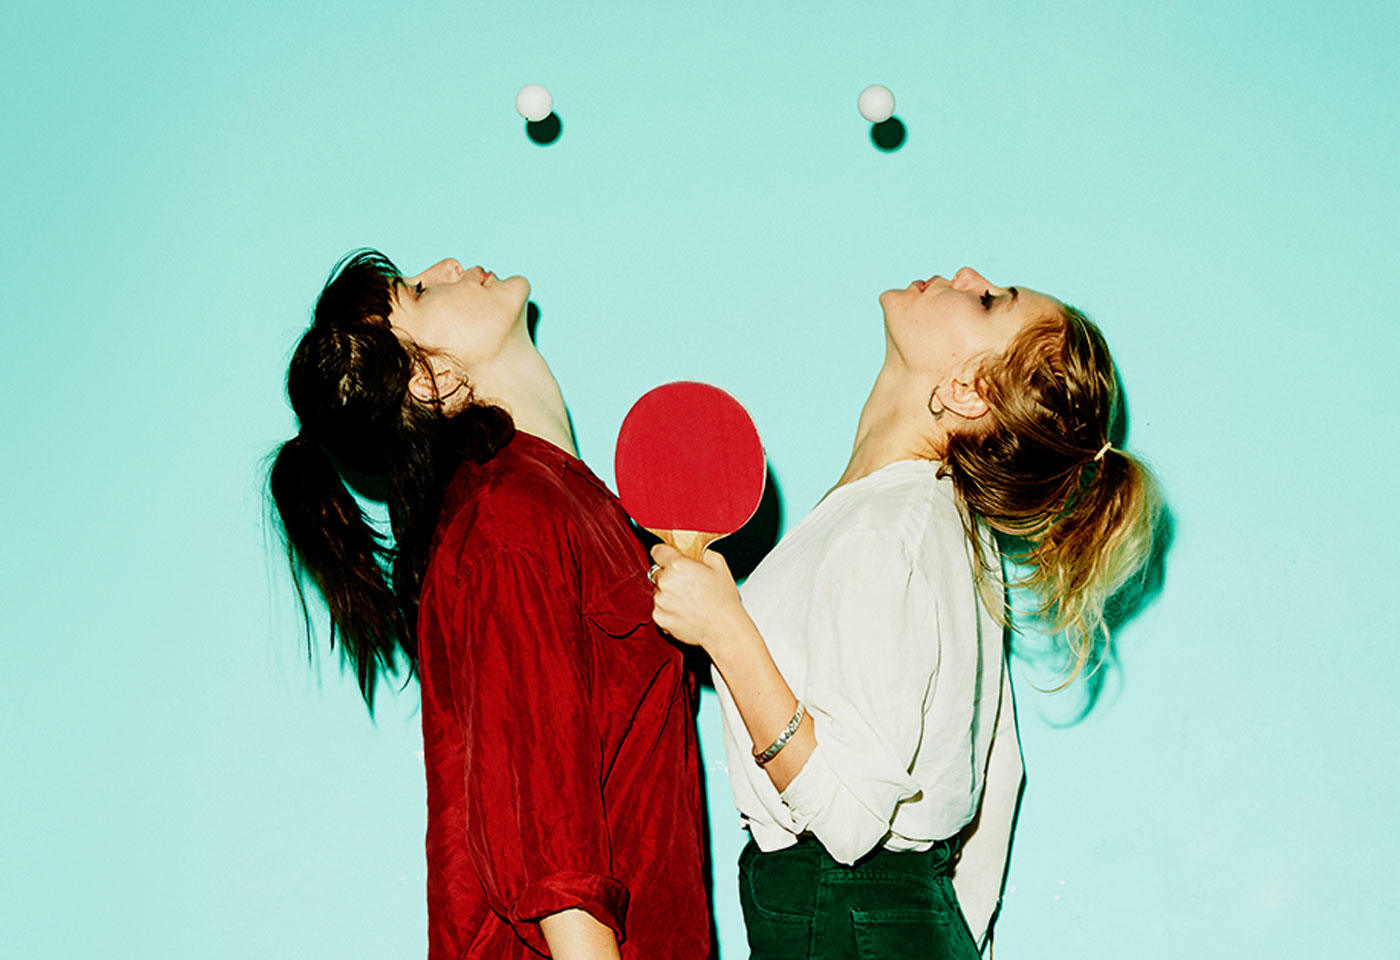 two girls with ping pong balls in the air